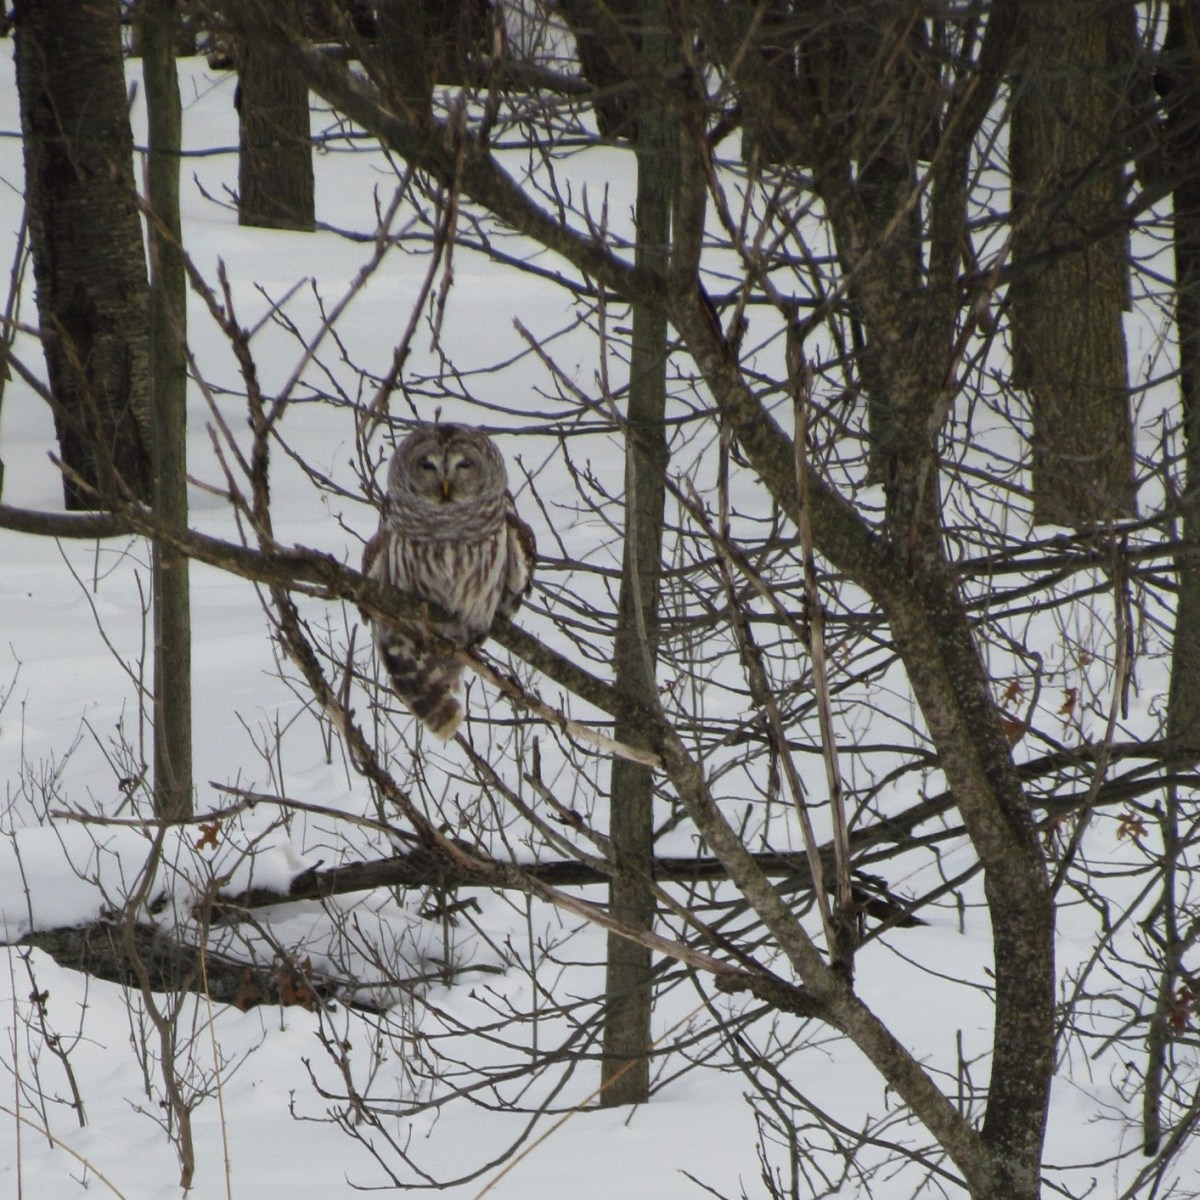 A Barred Owl at the edge of woods that are covered in snow